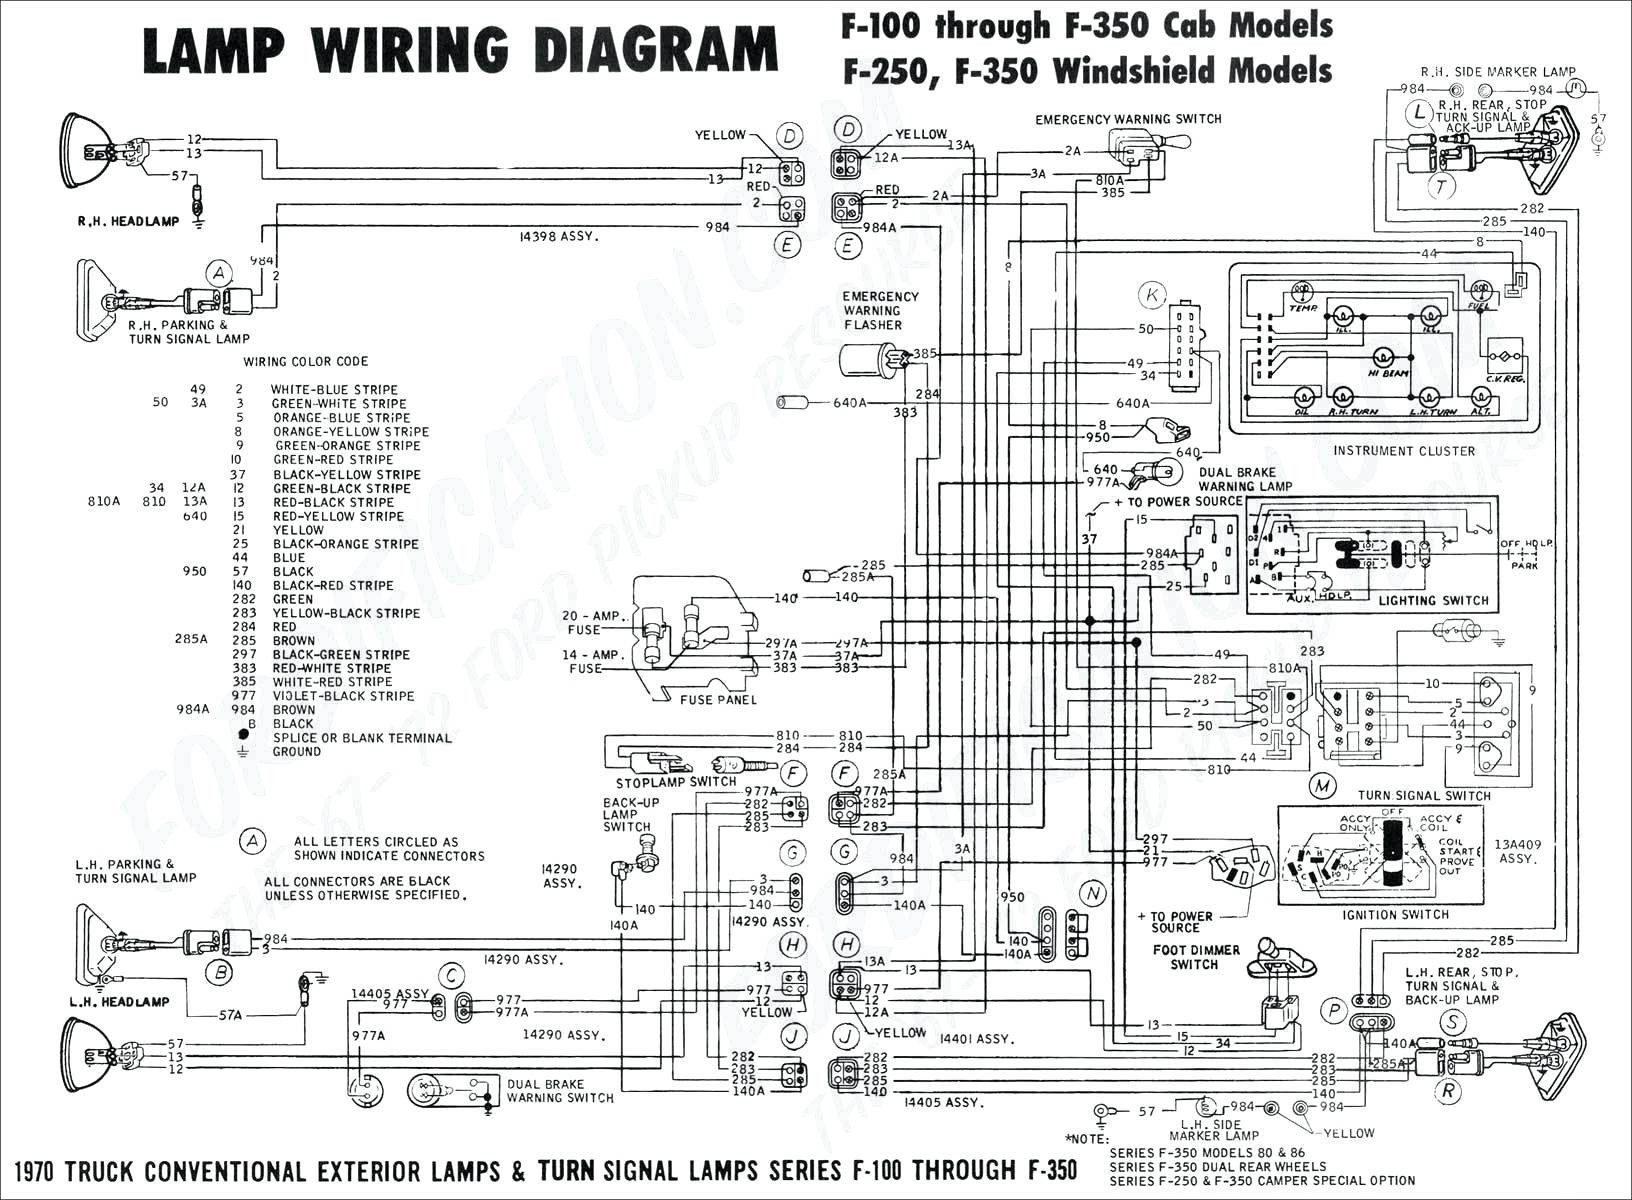 colorado wiring diagram 2007 colorado wiring diagram